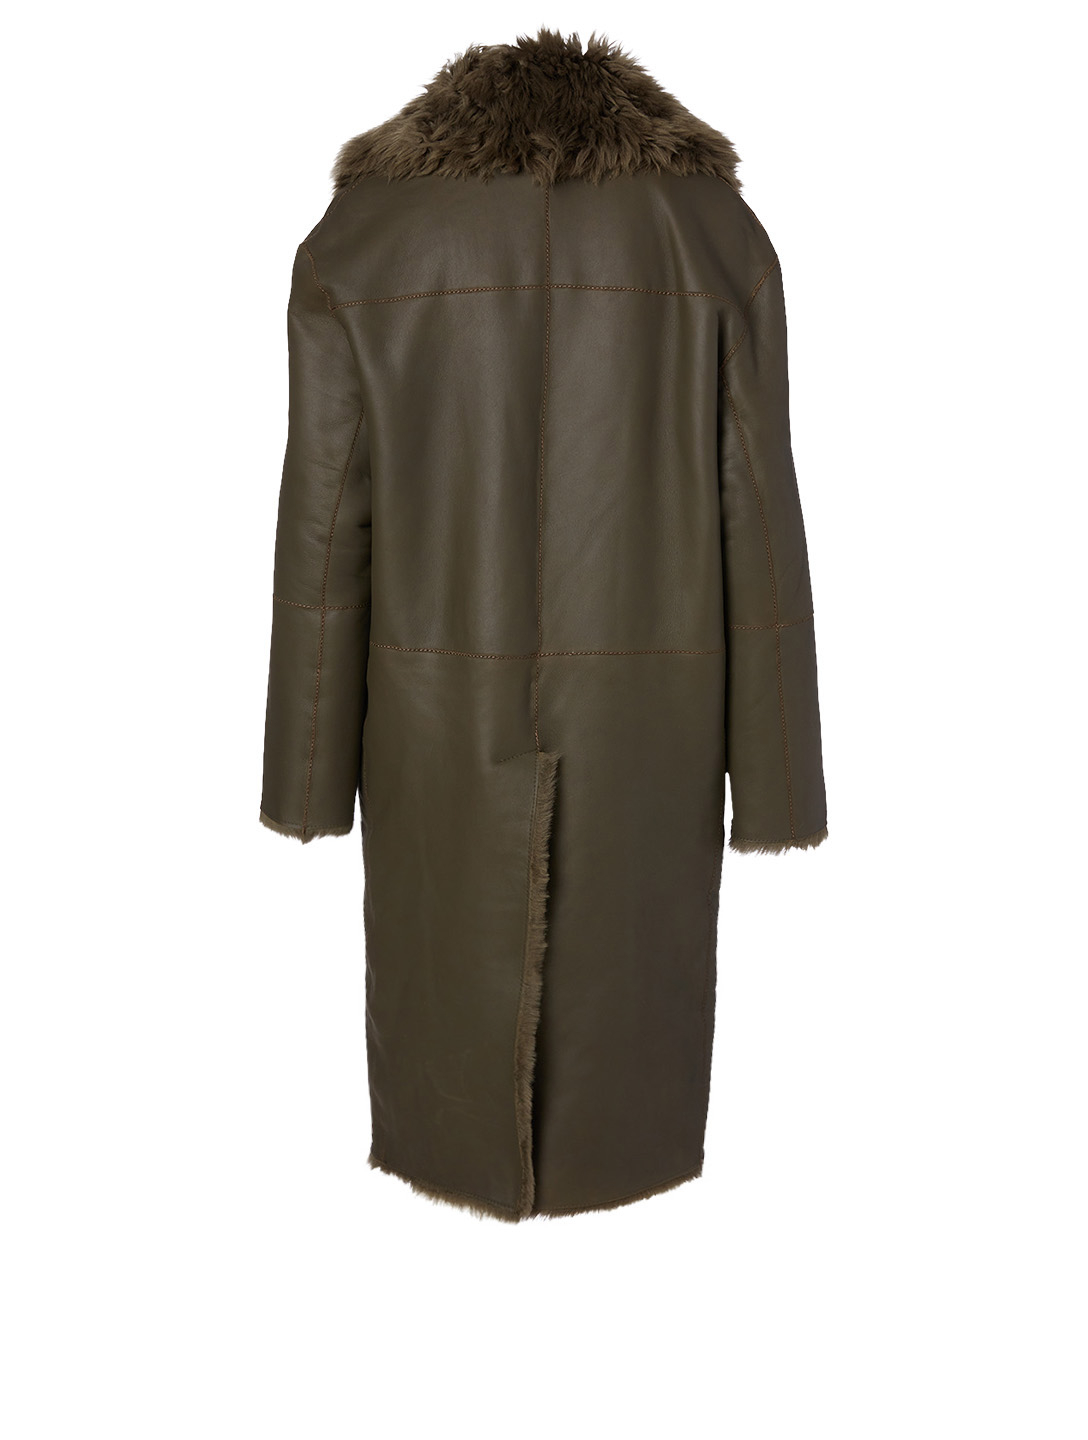 HISO Cartier Shearling Reversible Coat Women's Green